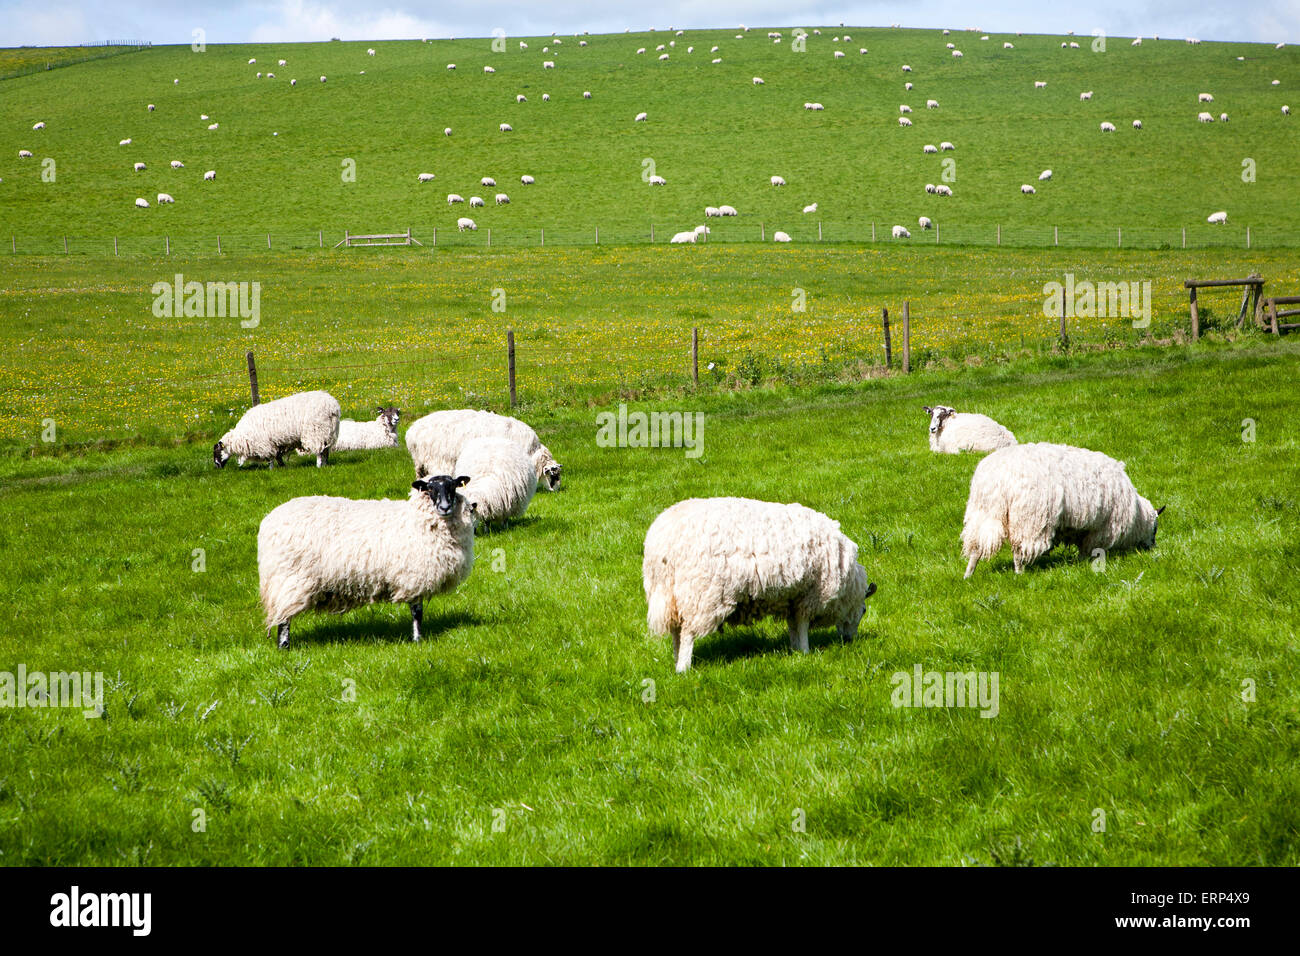 Sheep grazing in chalk downland fields, Wiltshire, England, UK - Stock Image